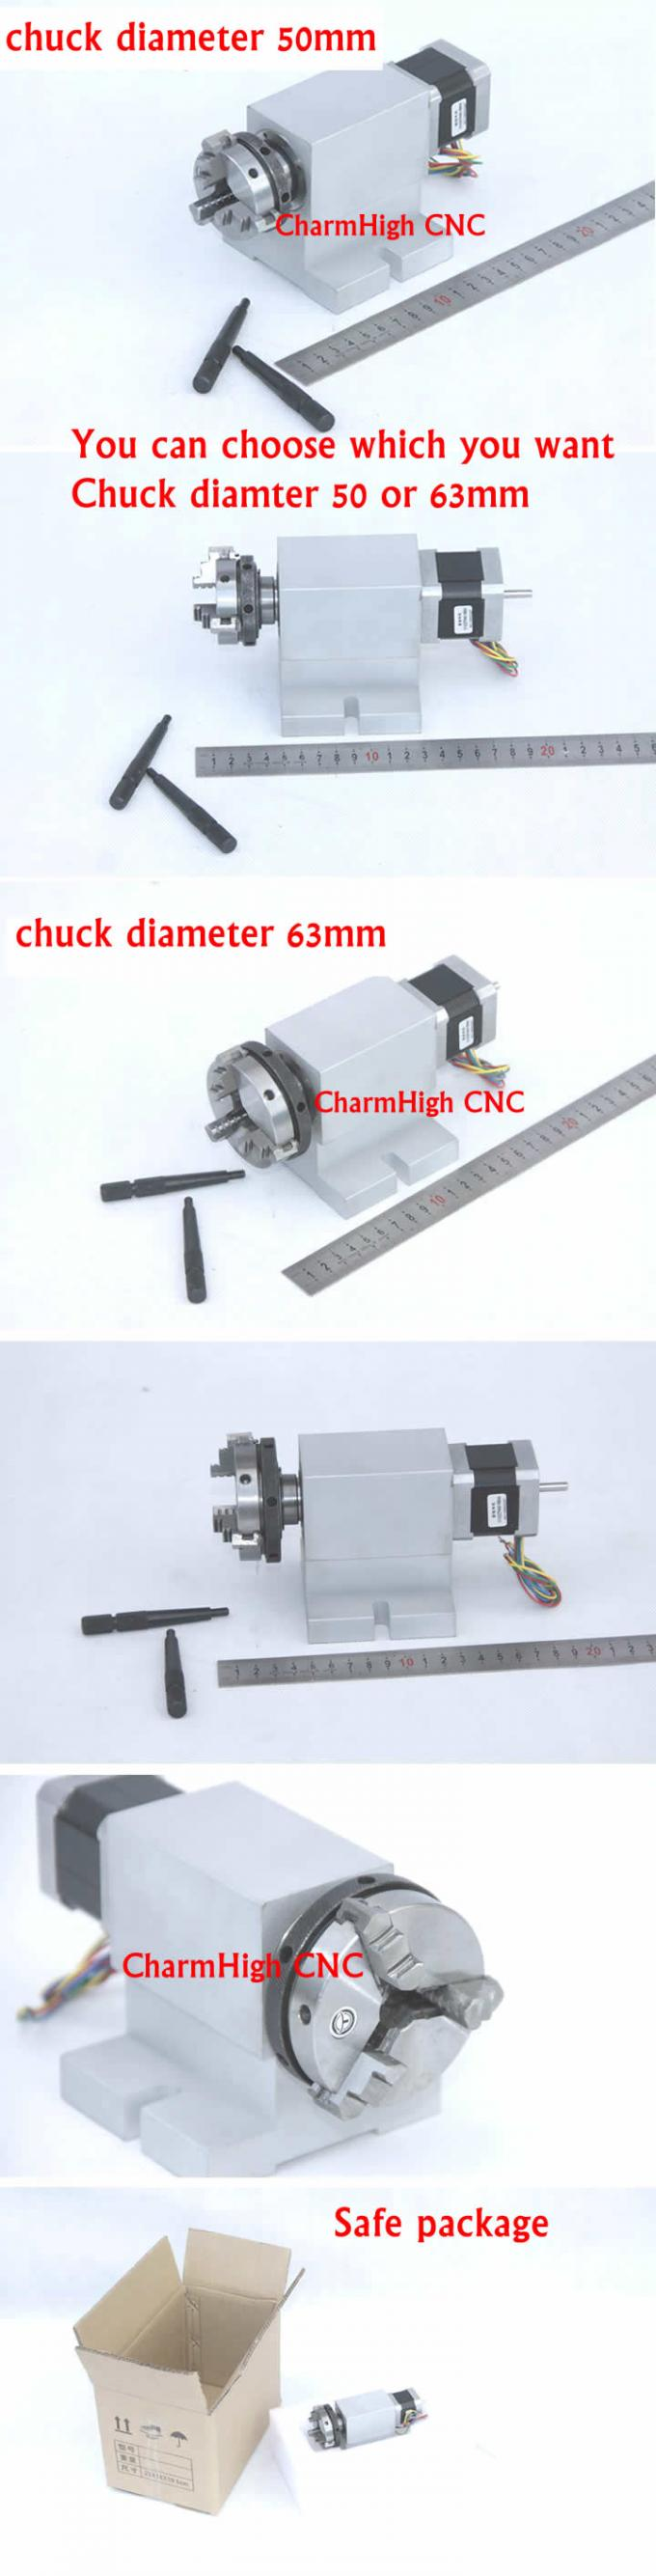 K01-63mm 3 jaw Chuck CNC 4th Axis with Harmonic reducer CNC Dividing Head